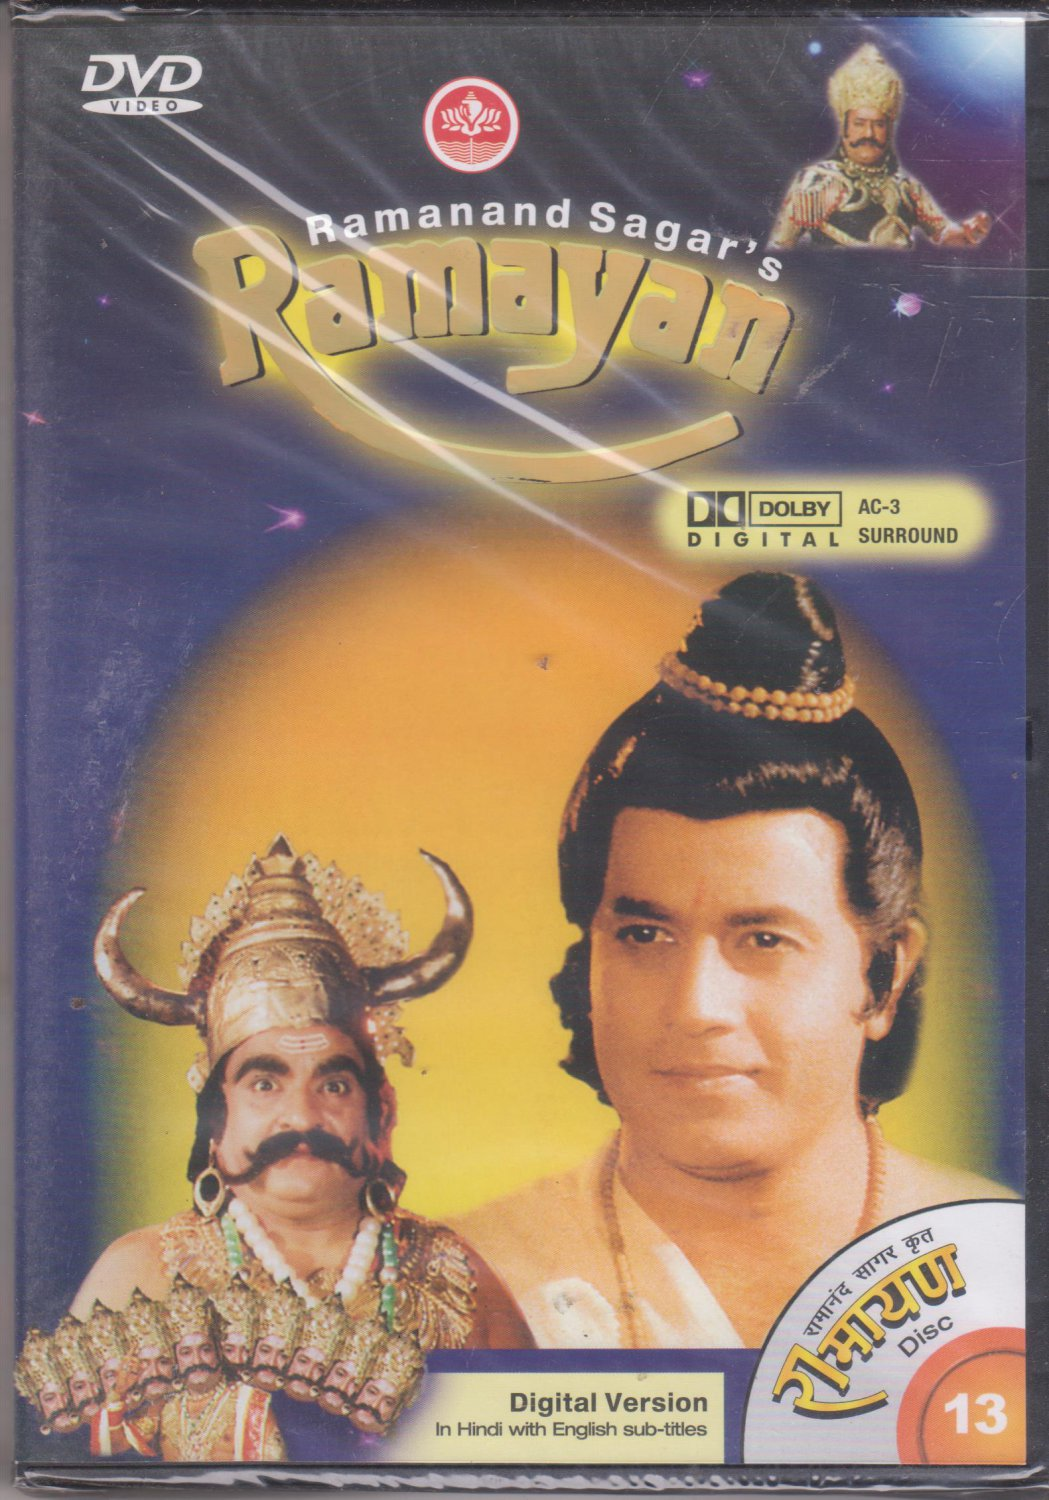 Ramayan - Disc 13 - Episode 59 to 63 - ramanand Sahar's  [Dvd]  1st edition Released